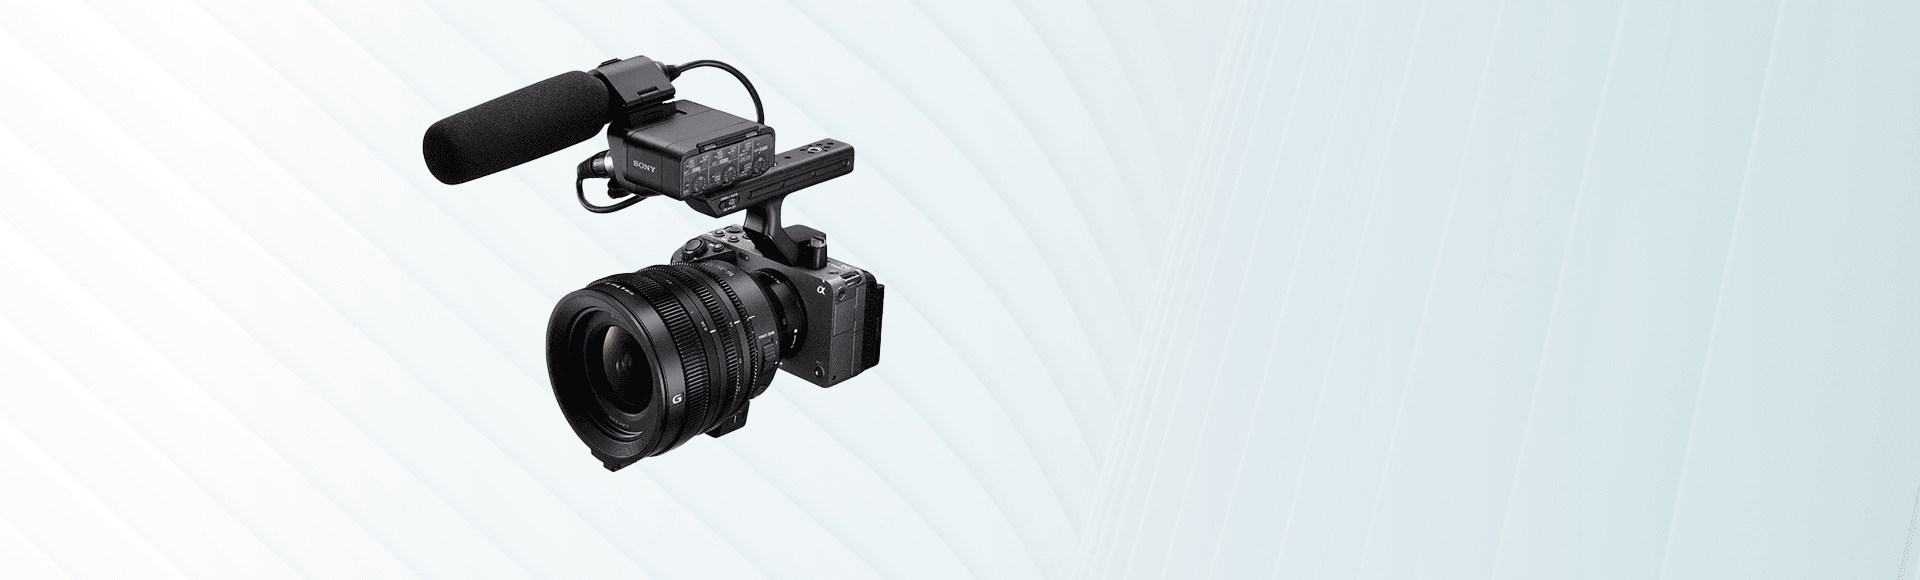 New Sony Alpha FX3 Cinema Line Camera